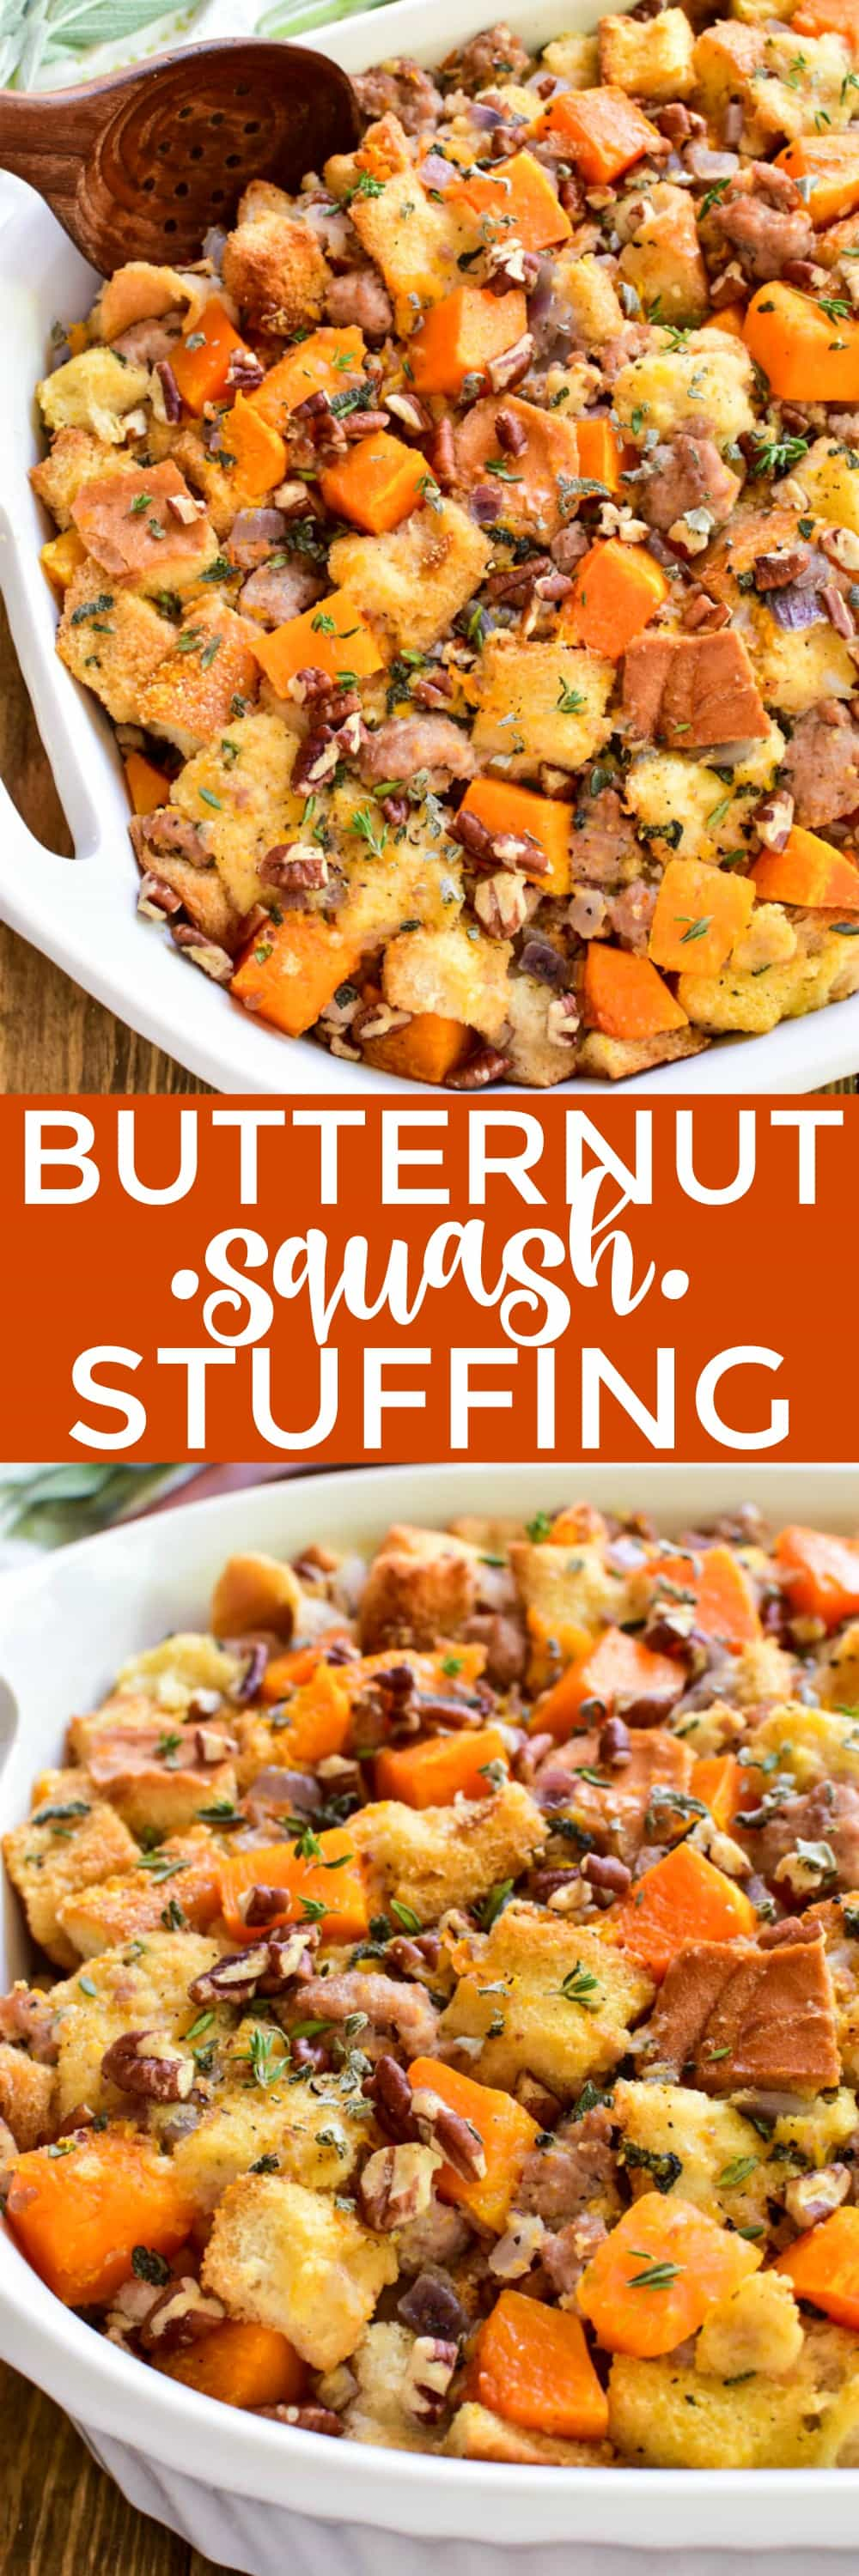 Switch up your holiday menu with this delicious Butternut Squash Stuffing! Loaded with toasted bread, Italian sausage, chopped pecans, fresh sage, and roasted butternut squash....this stuffing is flavor-packed and perfect for your holiday celebrations! Whether you're stuck in a Thanksgiving dinner rut or just looking to try something new, you'll LOVE this yummy twist on a classic. We love all things butternut squash at this time of year, from this delicious Roasted Butternut Squash Saladto Butternut Squash Risottoand everything in between. It's versatile, easy to prepare, and has the most delicious flavor. If you love butternut squash, this Butternut Squash Stuffing is for you!